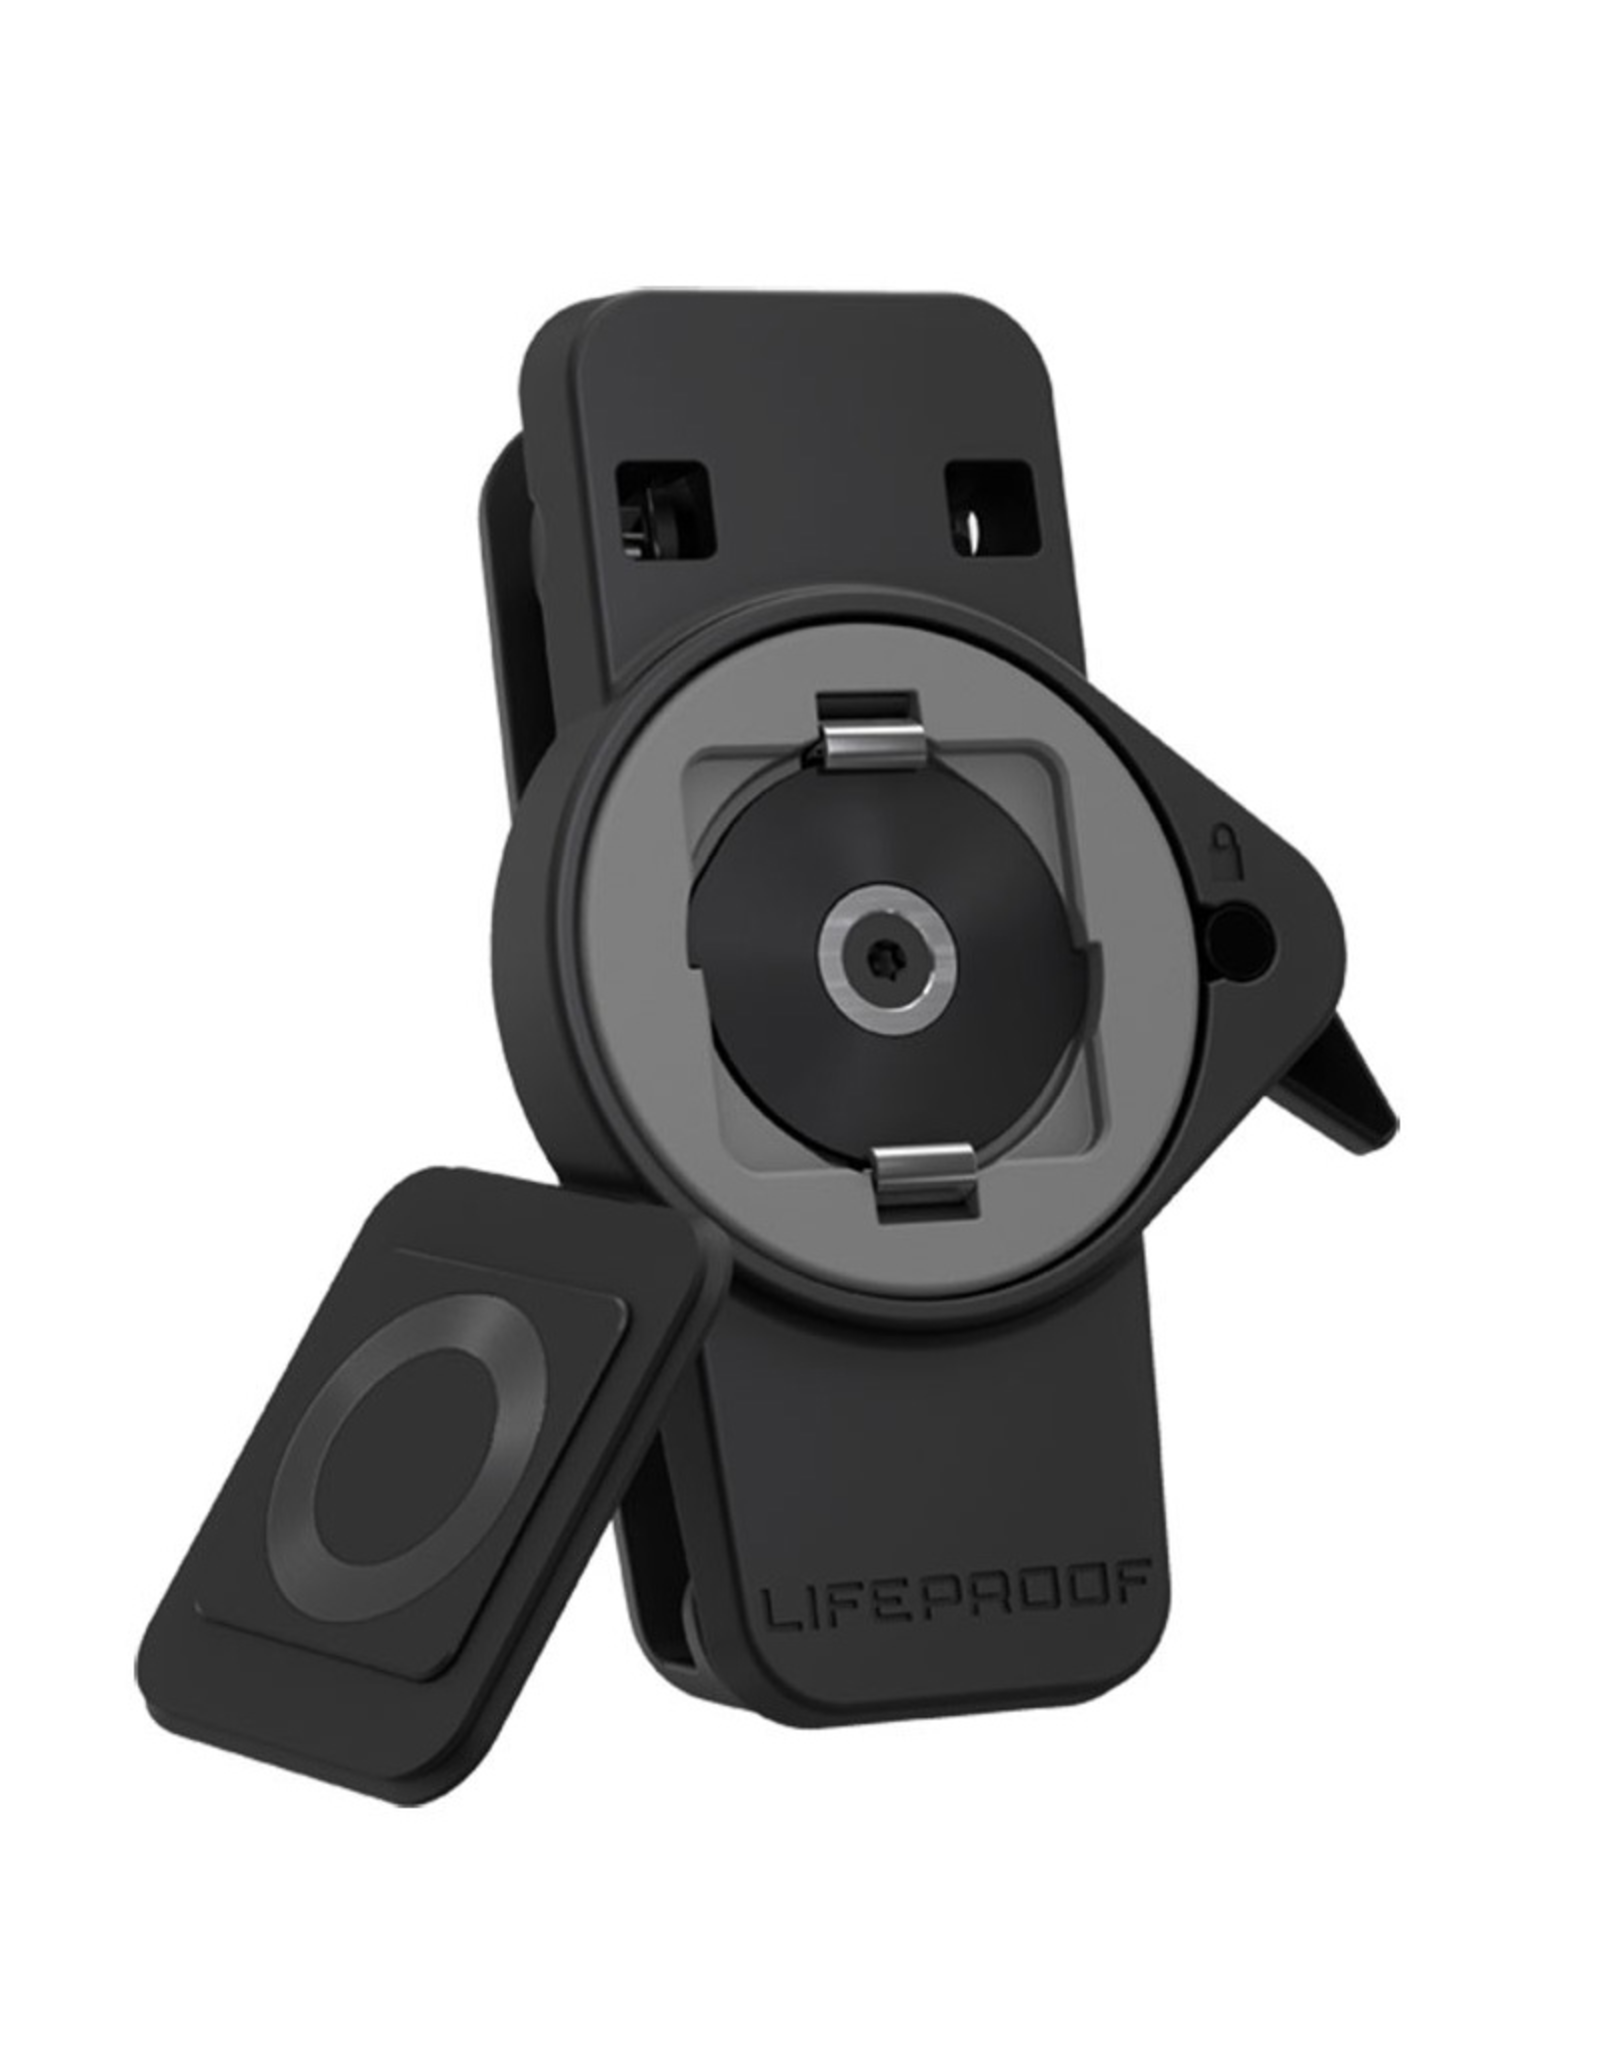 Lifeproof Lifeproof LifeActive Belt Clip with Quickmount - Black EOL